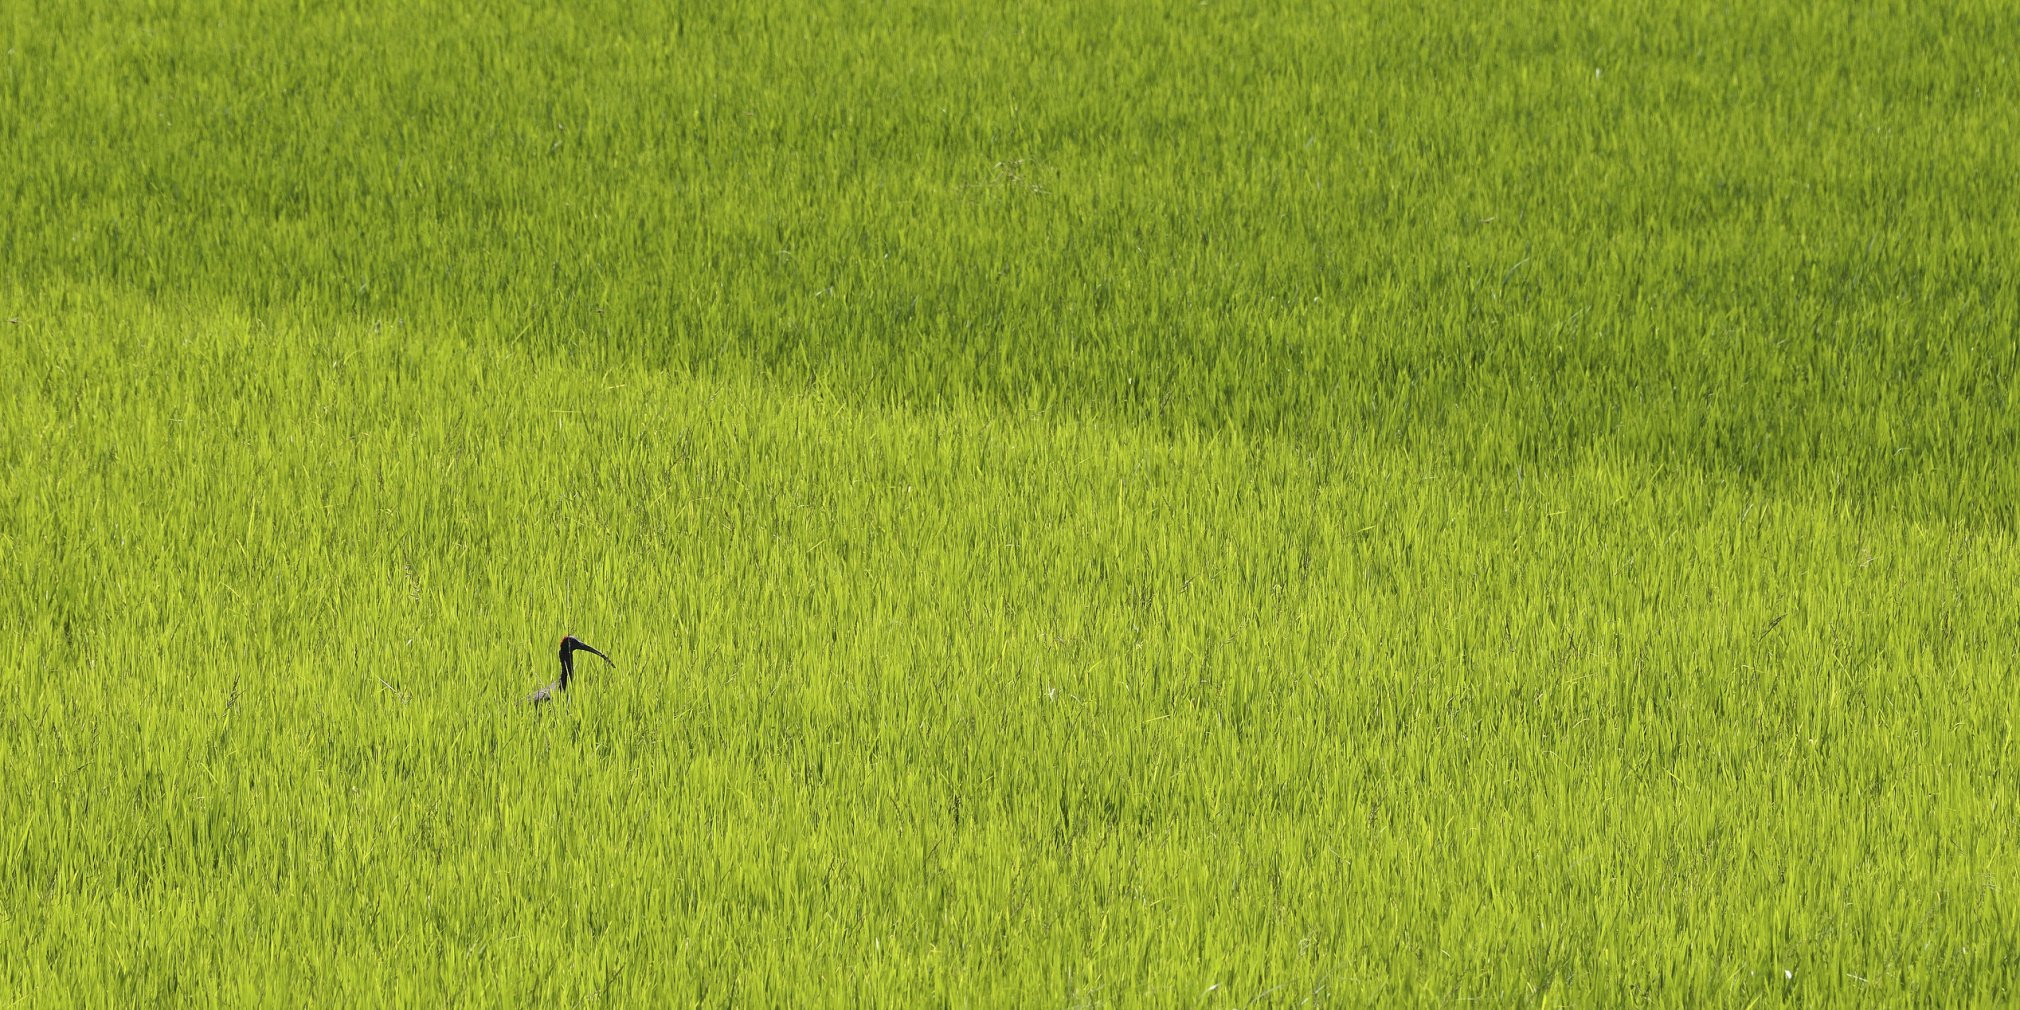 Red-naped-ibis-scape-header